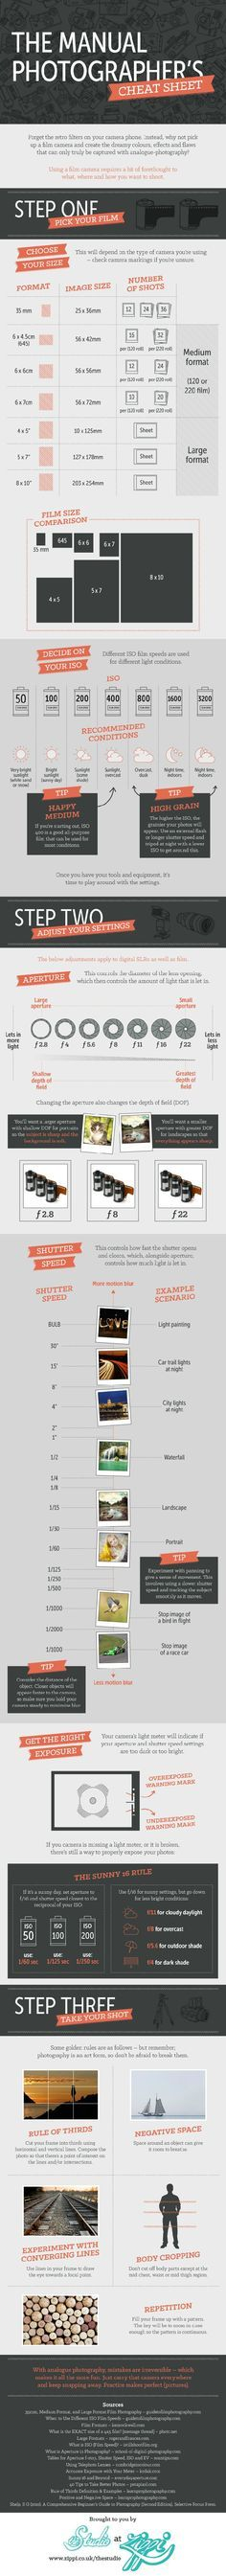 The Manual Photographer's Cheat Sheet: A Comprehensive Infographic for Beginners | As beneficial as the more automated style of photography can be at times, nothing quite compares to the control and connection you feel when shooting manually.